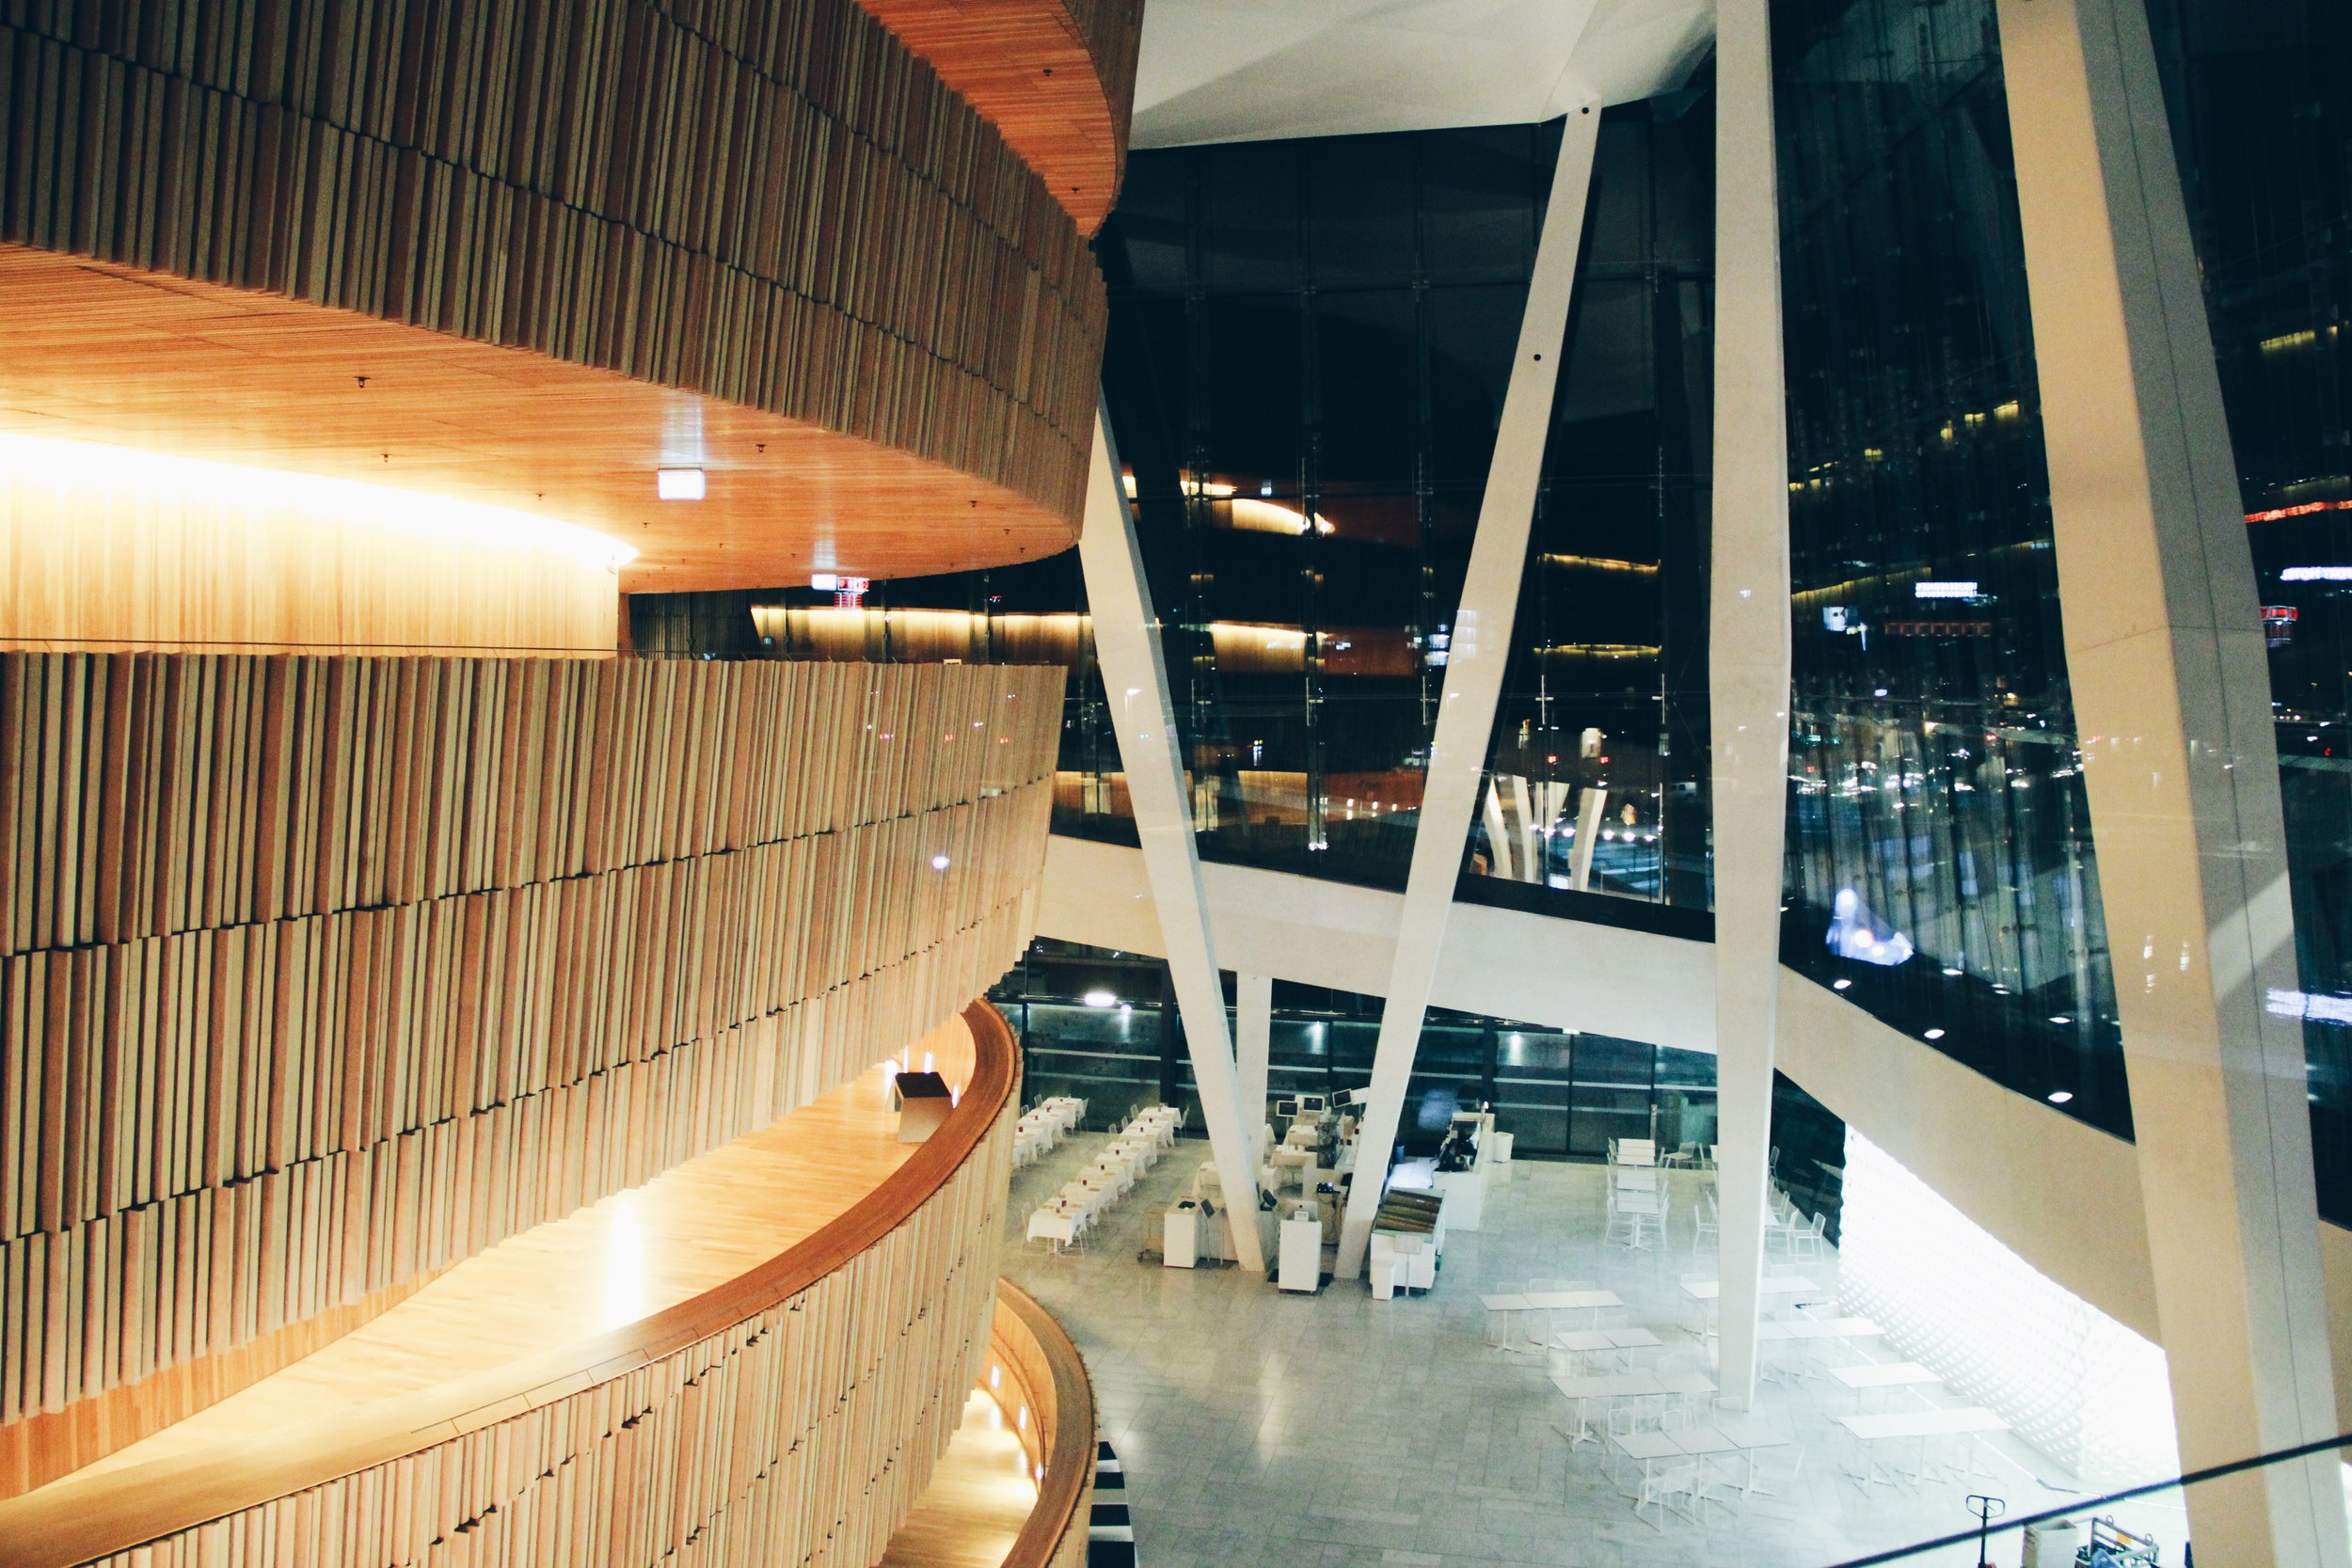 Inside of the Oslo Opera House at night.